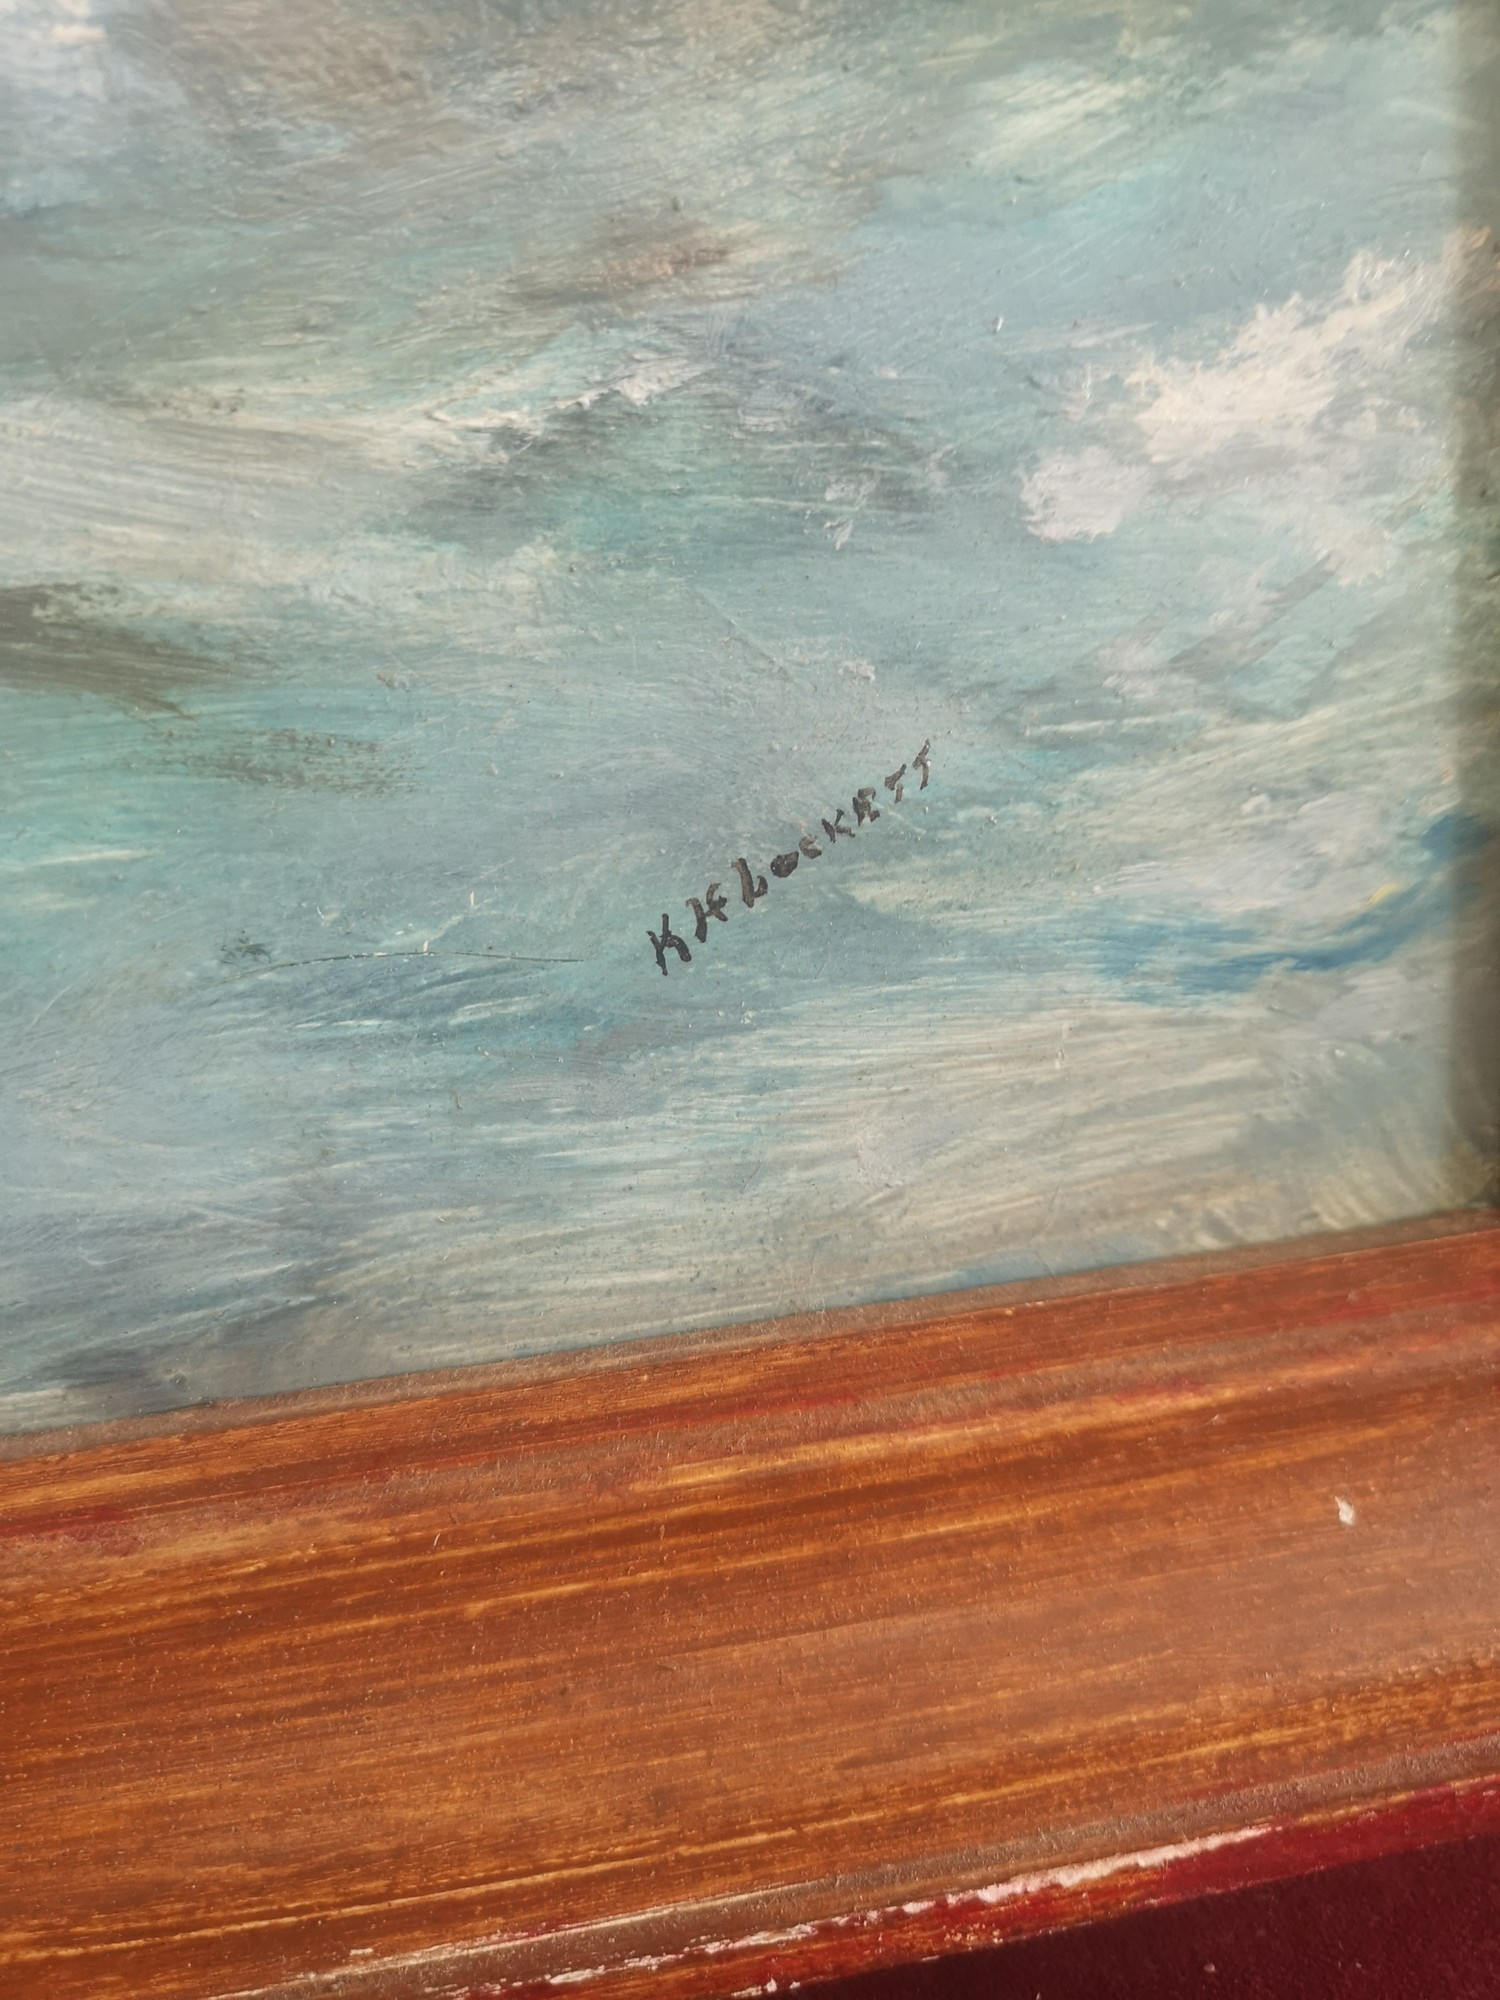 Large oil Painting depicting Royal navy war ships signed K H Locket. 22 inches in length by 18 - Image 4 of 4